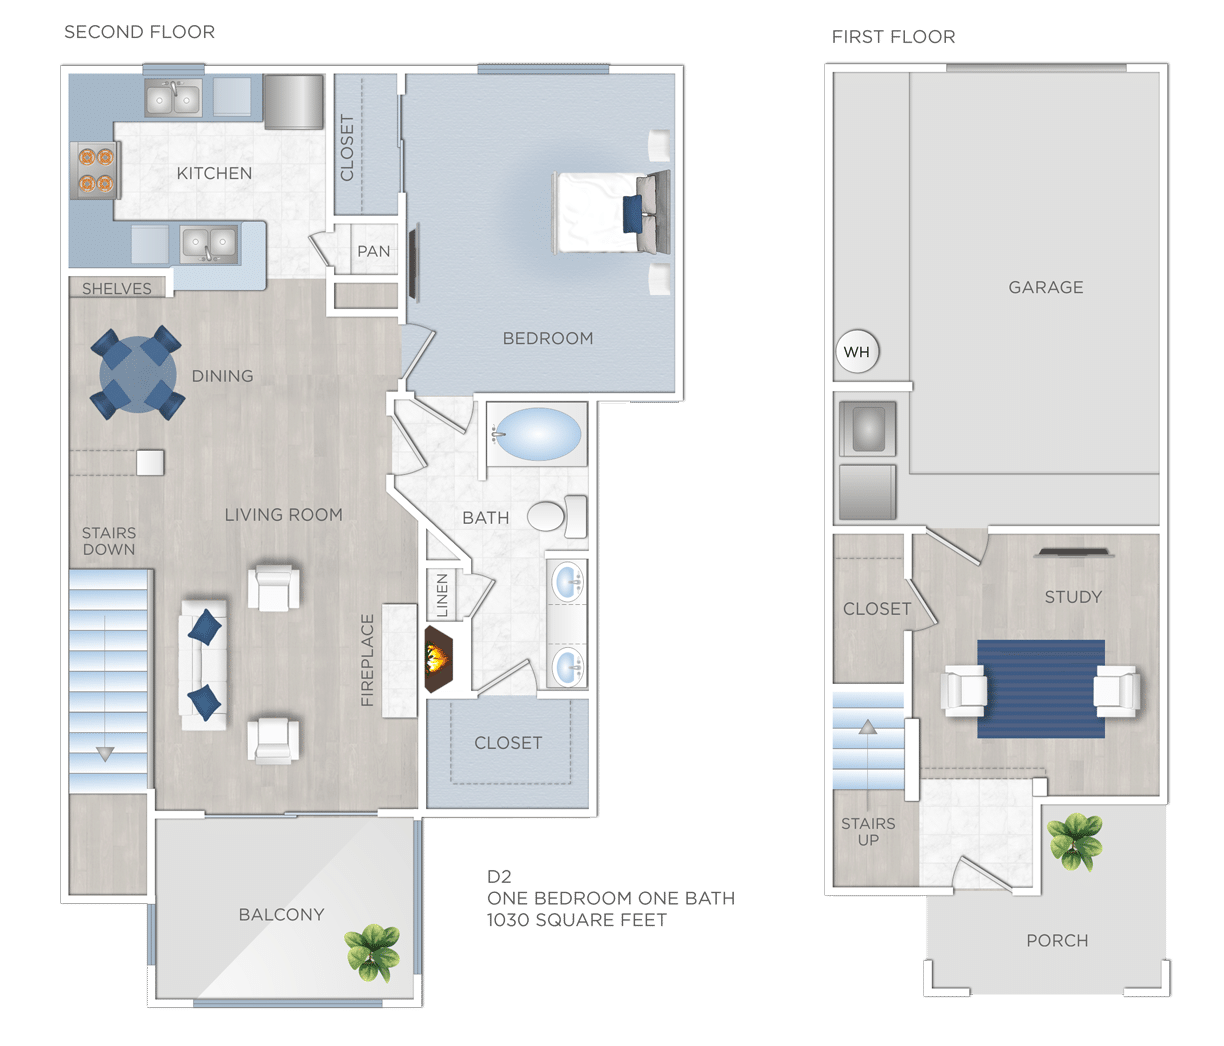 One Bedroom Apartments in Jersey Village, TX